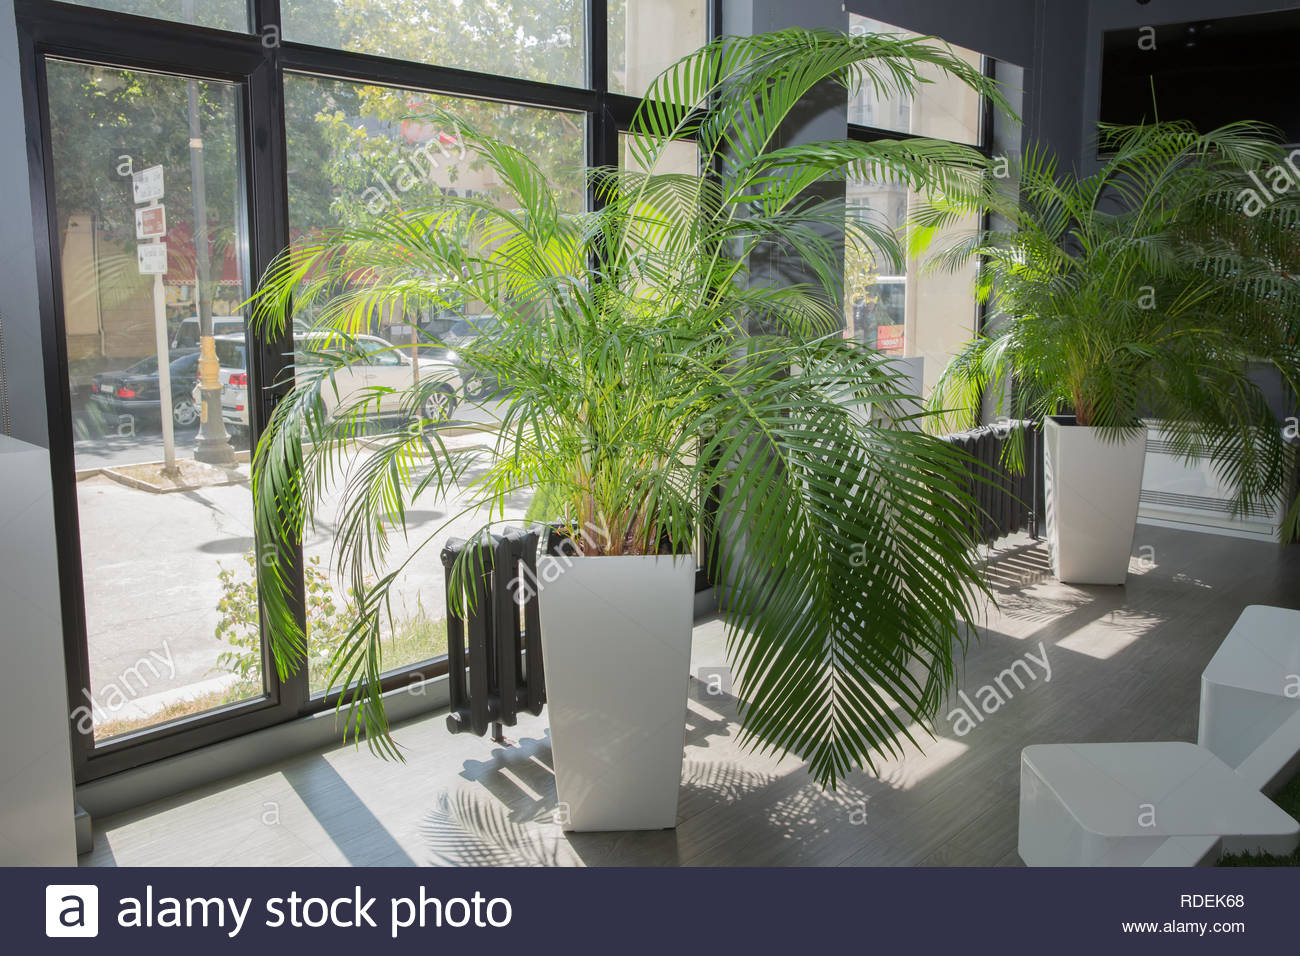 Vases In A Row Green Plant Pot Next The Window In The in dimensions 1300 X 956